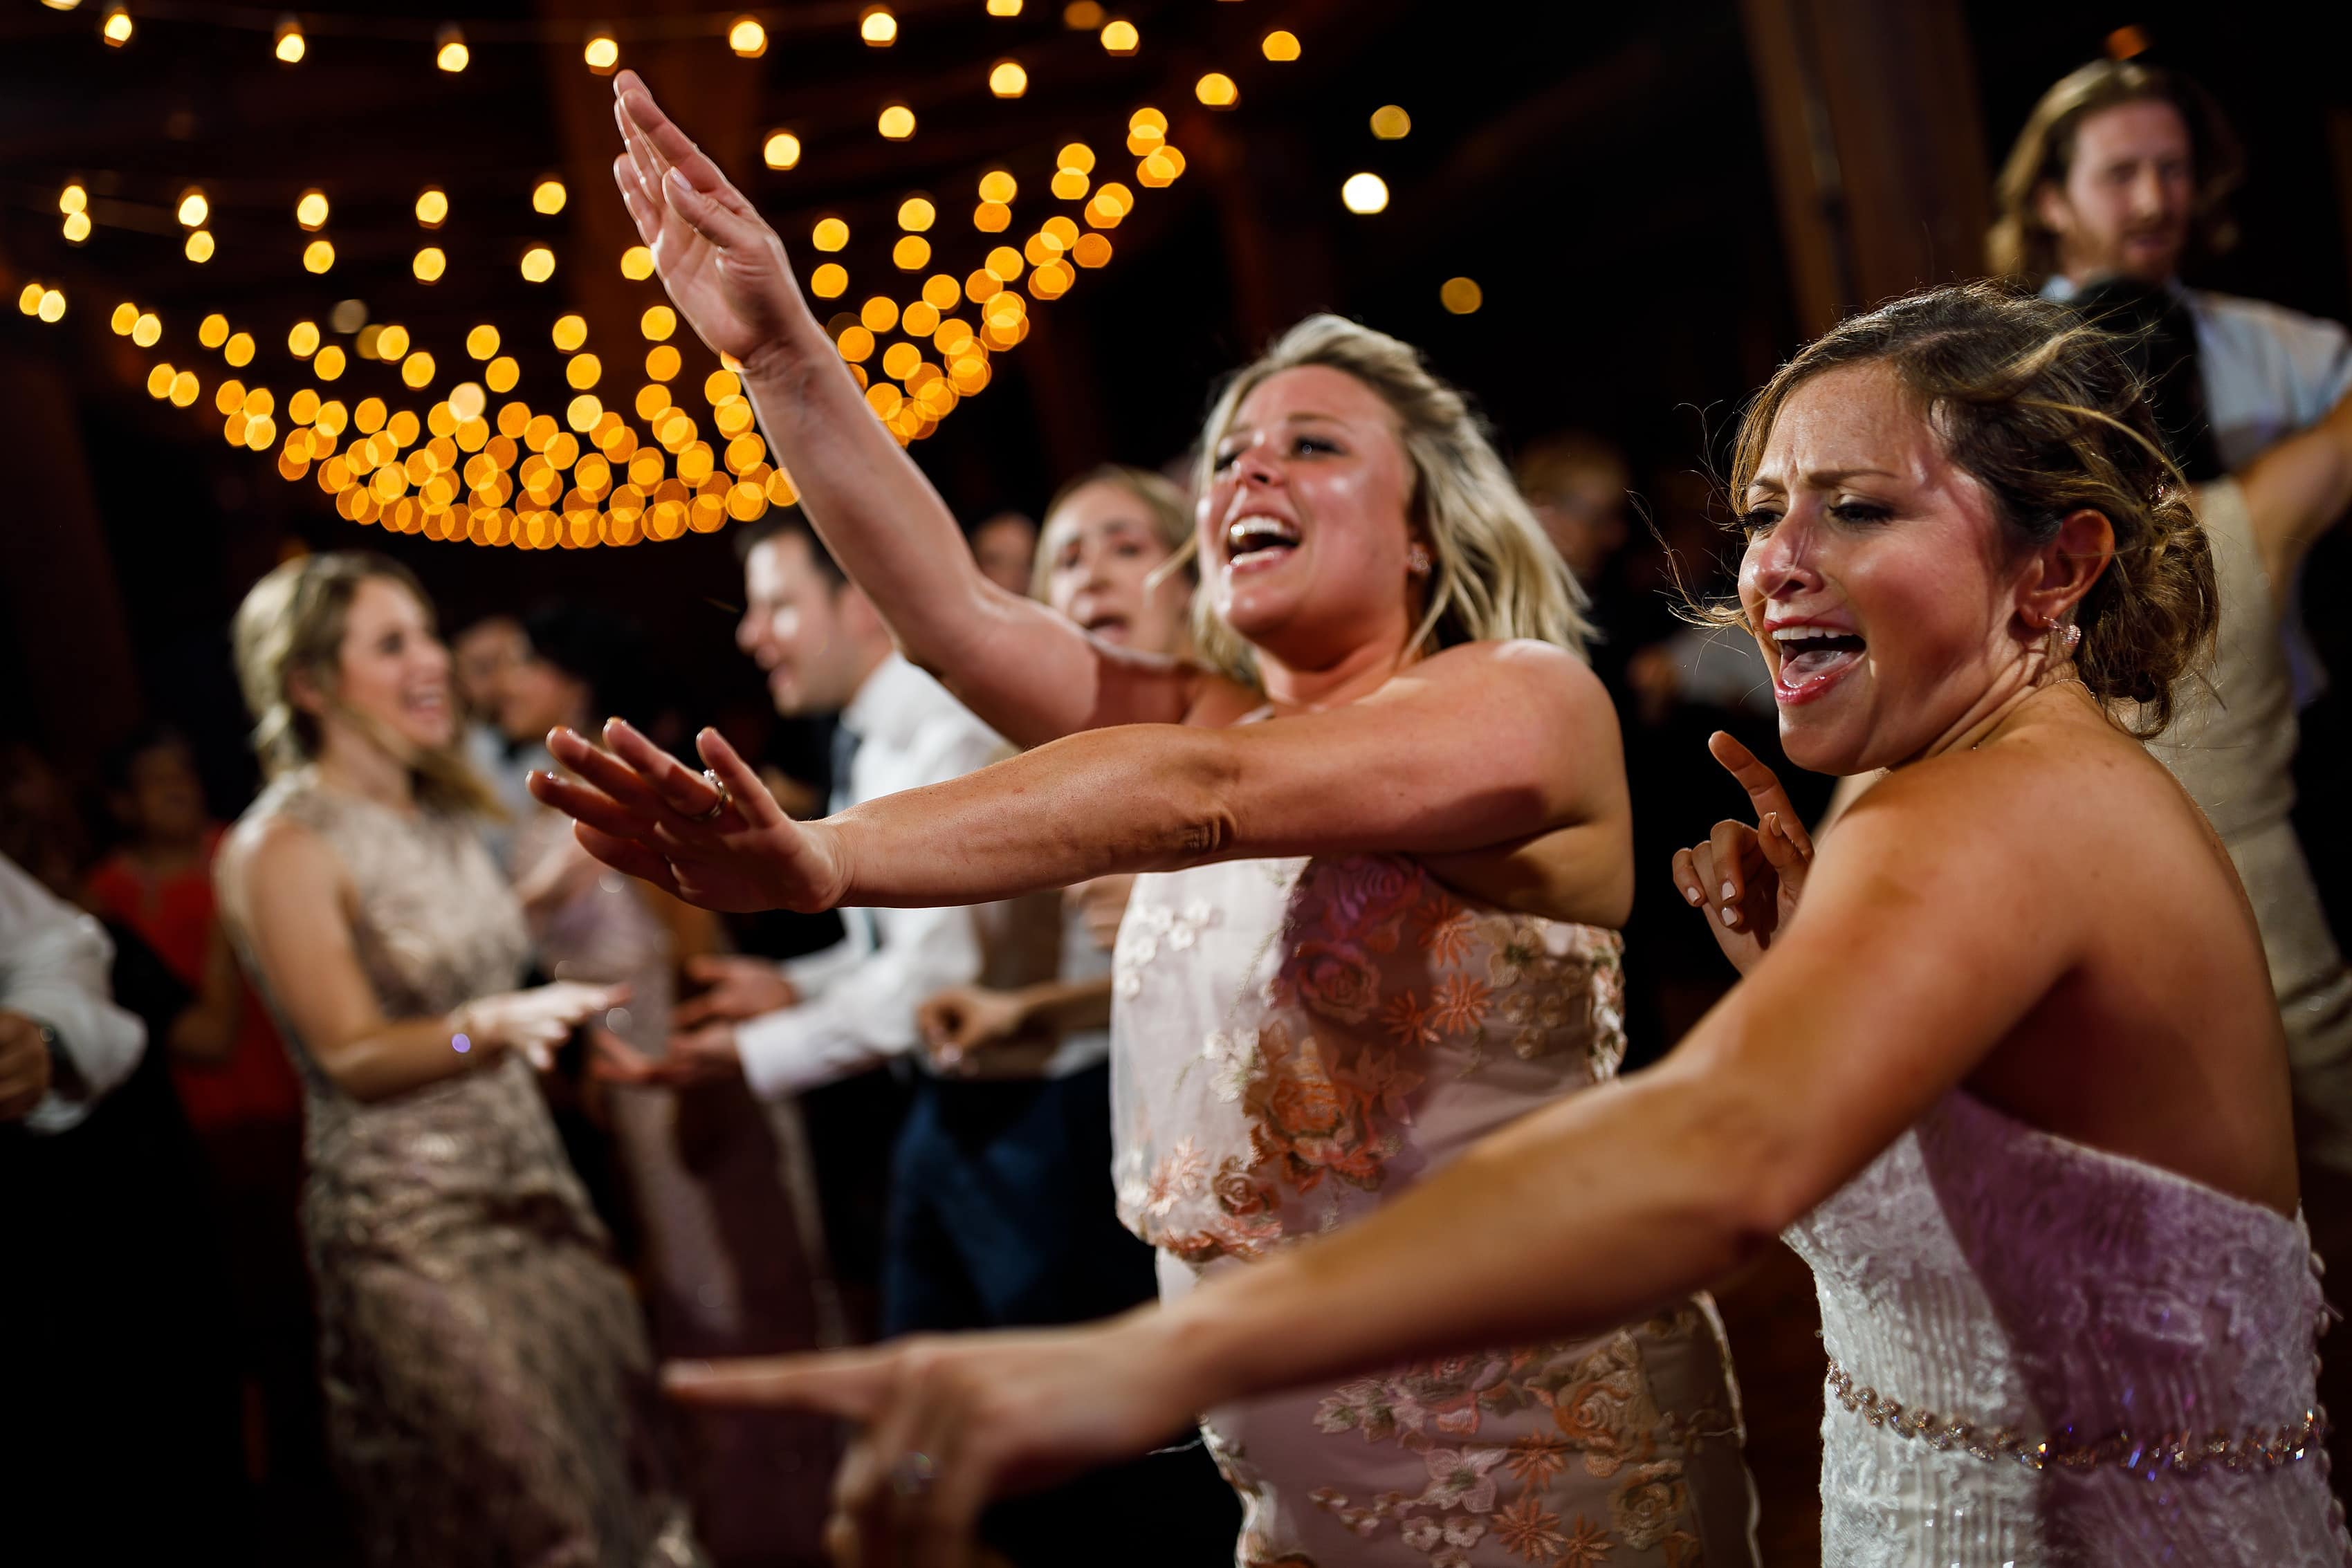 bride dances with sister during wedding reception at Bridgeport Art Center Sculpture Garden in Chicago